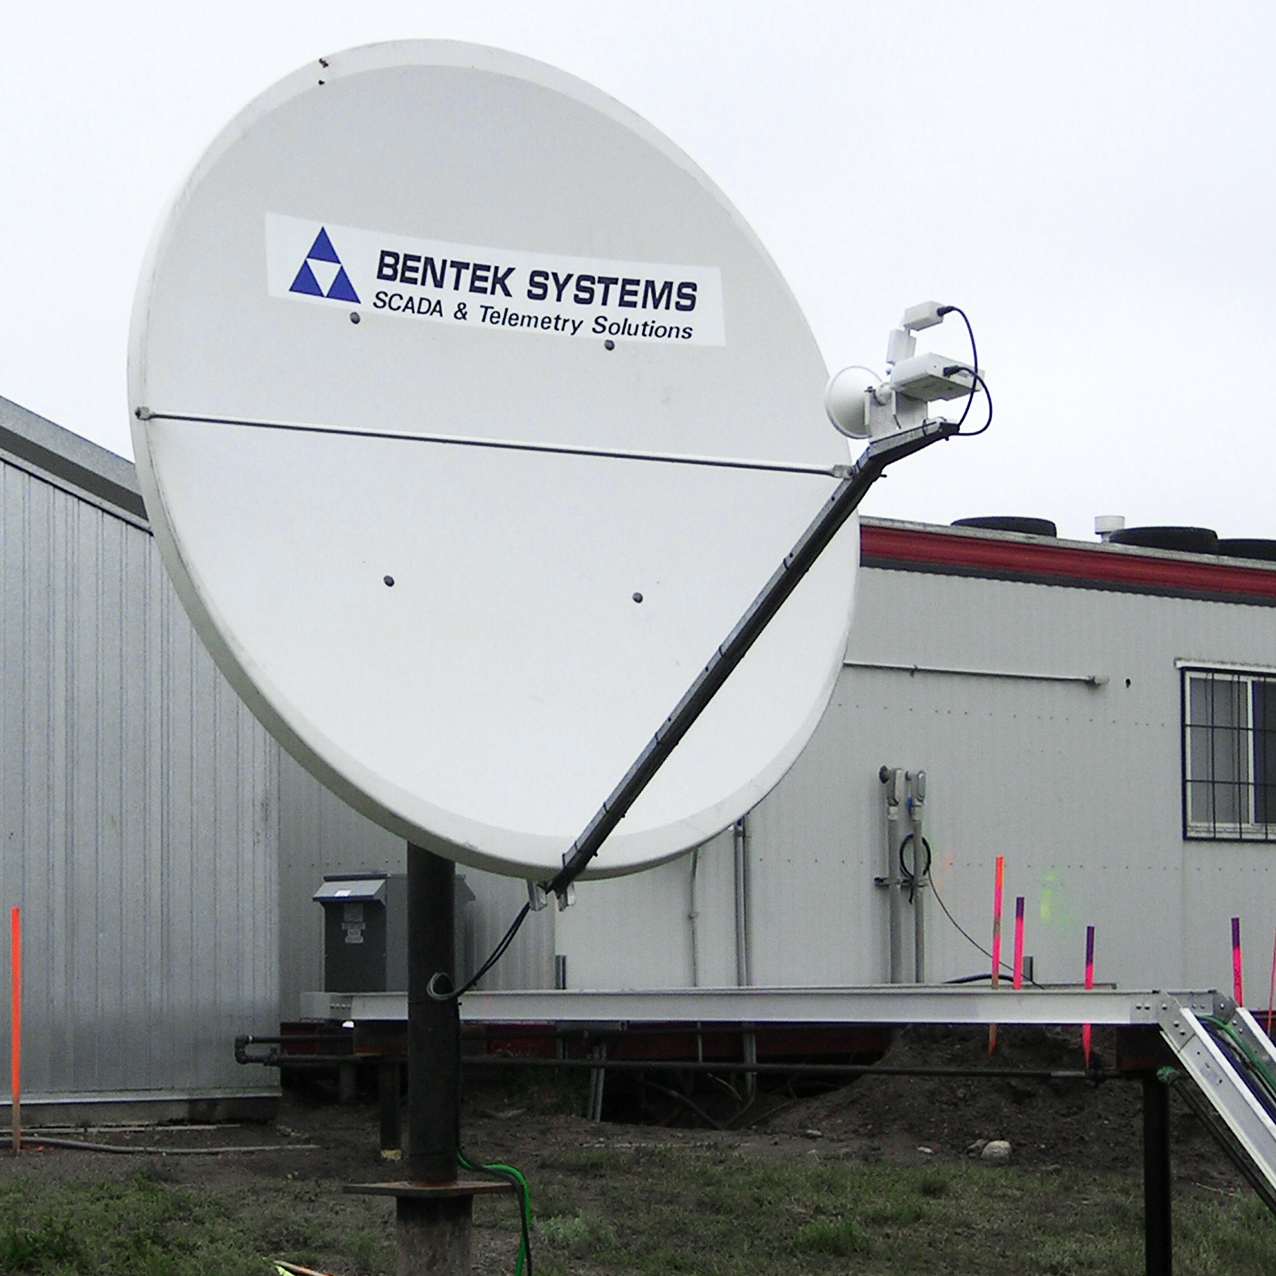 VSAT Satellite Dish